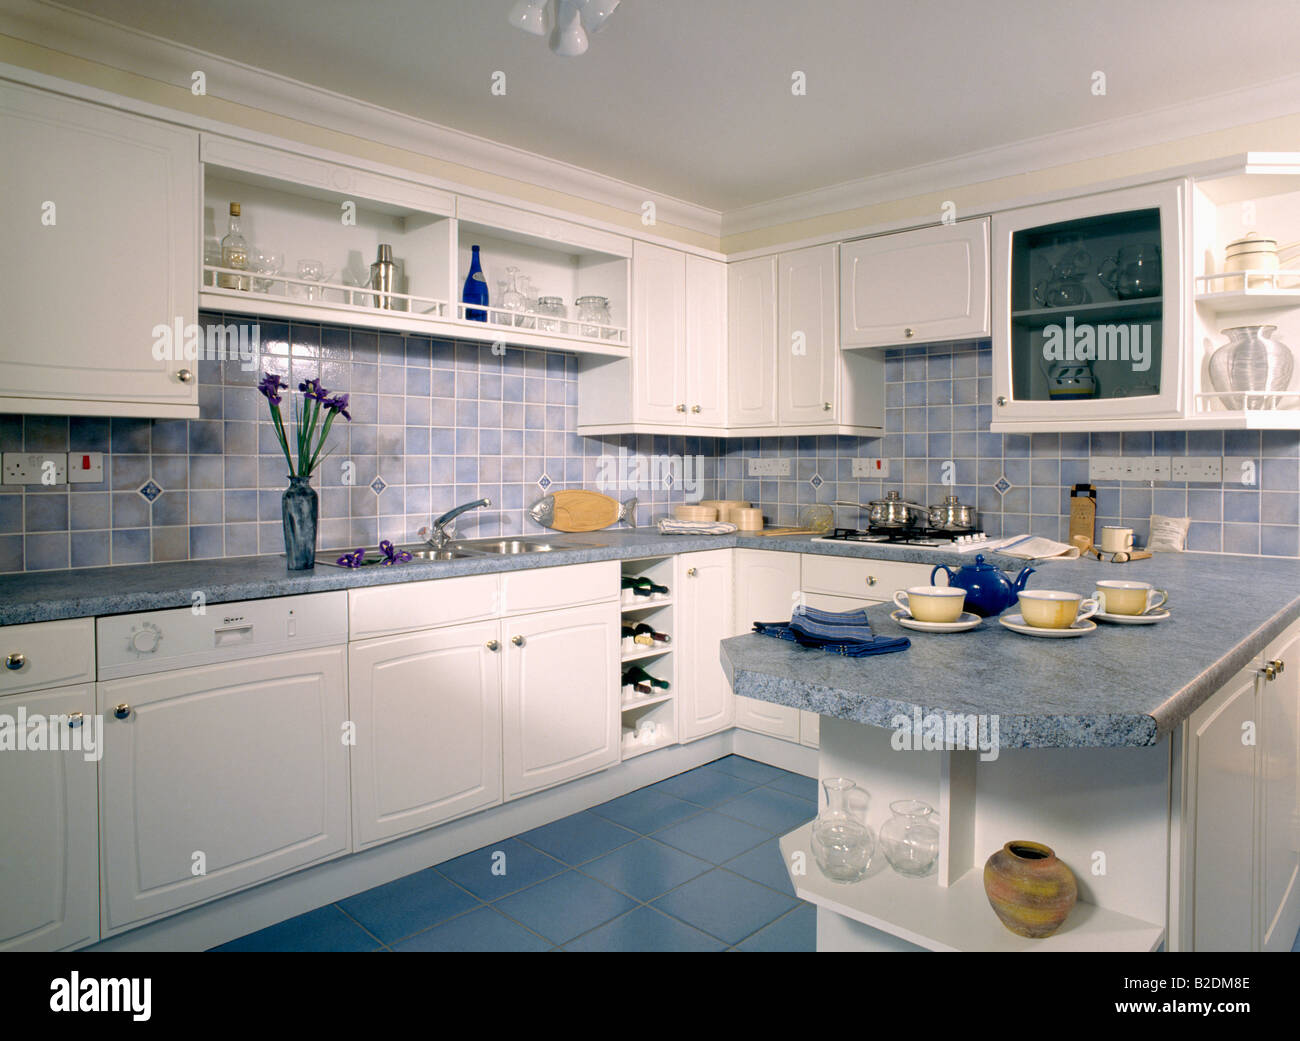 Kitchen Tiled Splashback Grey Worktops And Splashback Tiles In White Eighties Kitchen Stock